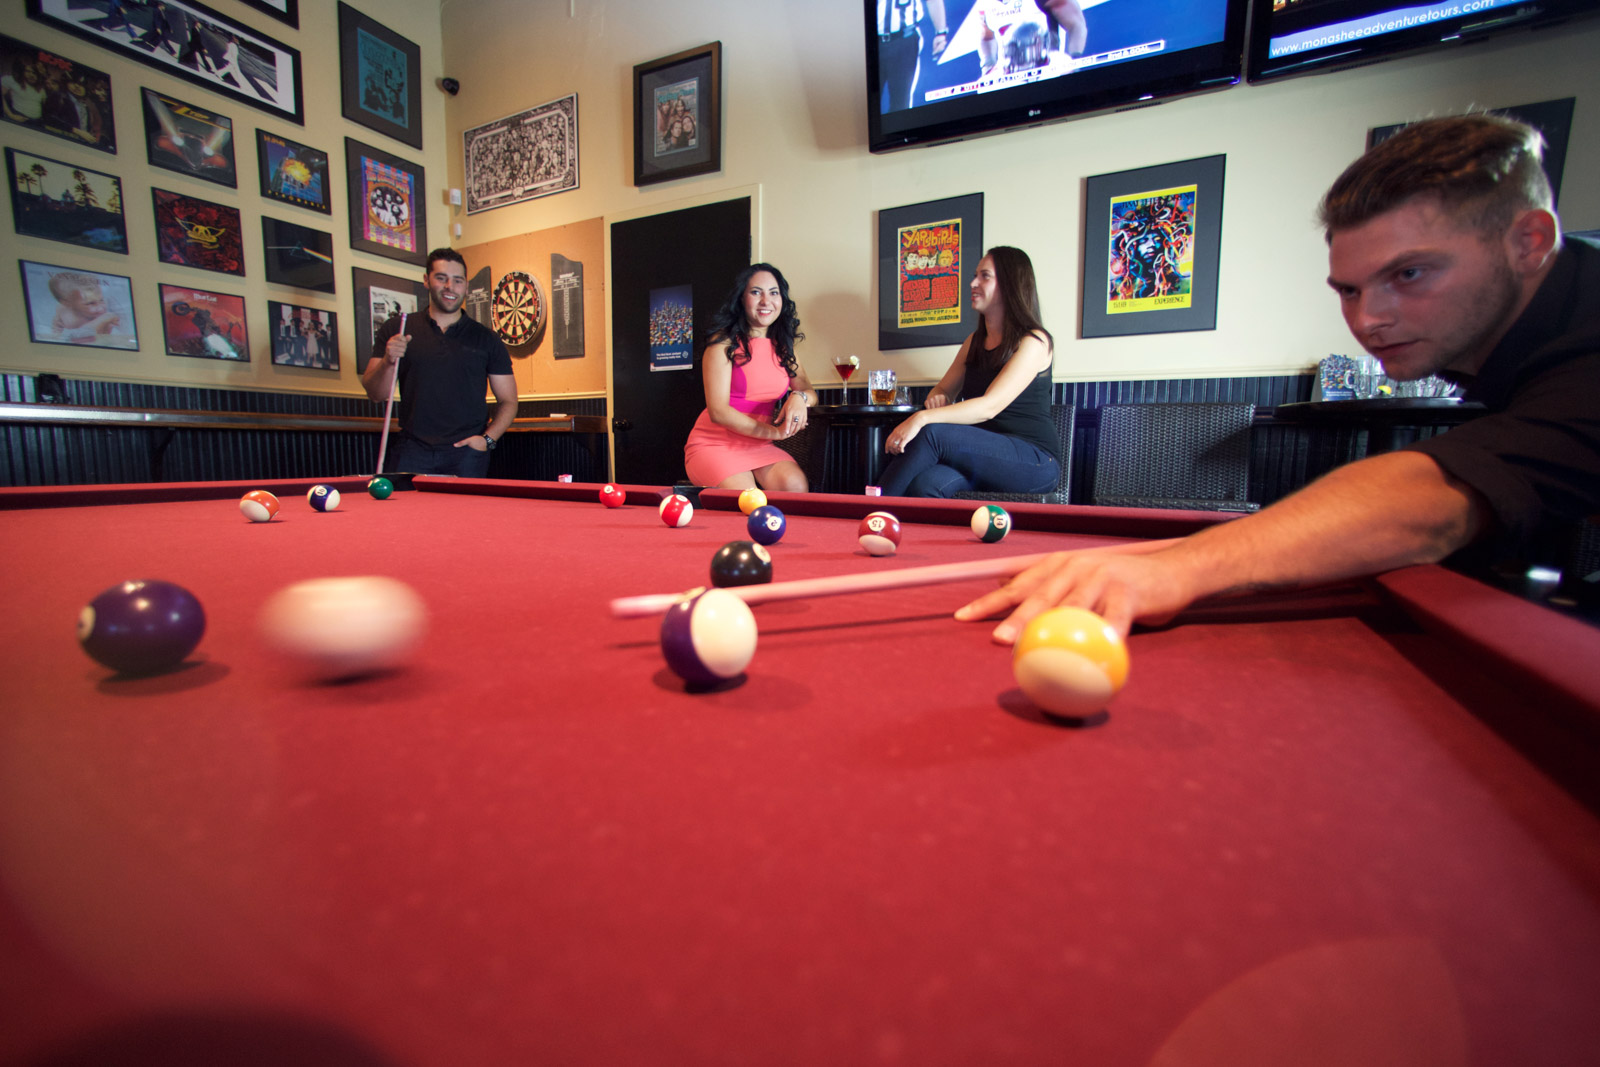 Show off your mad pool table skills, which we know will be especially improved with a burger and drink on hand!<br>